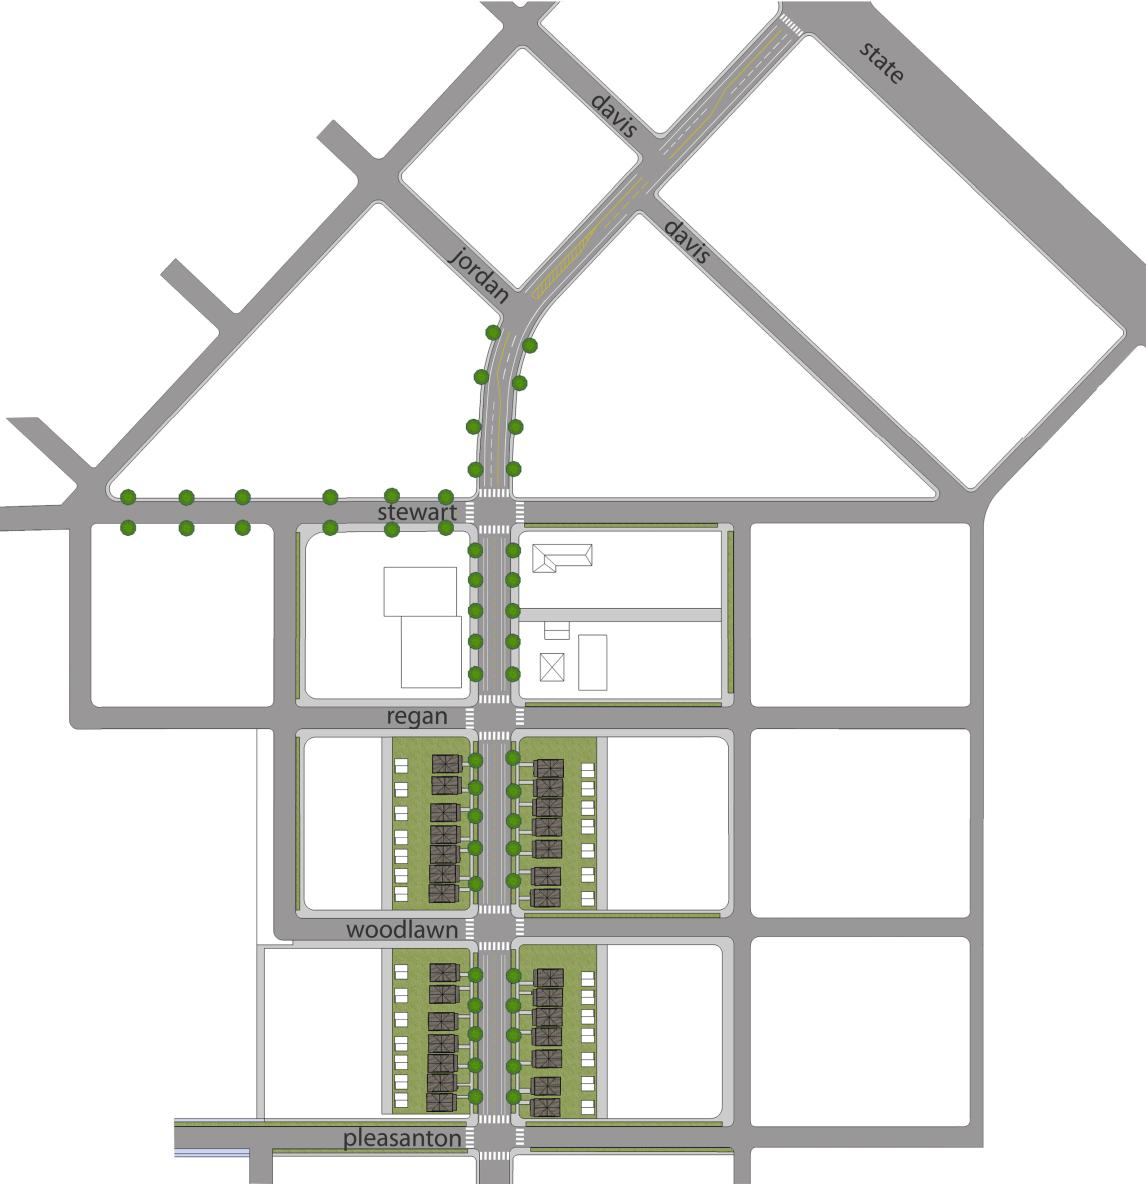 - Plan Views Figure 40 shws a plan view f the City f Bise s preferred design fr the streets in the 27th Street Neighbrhd Center.